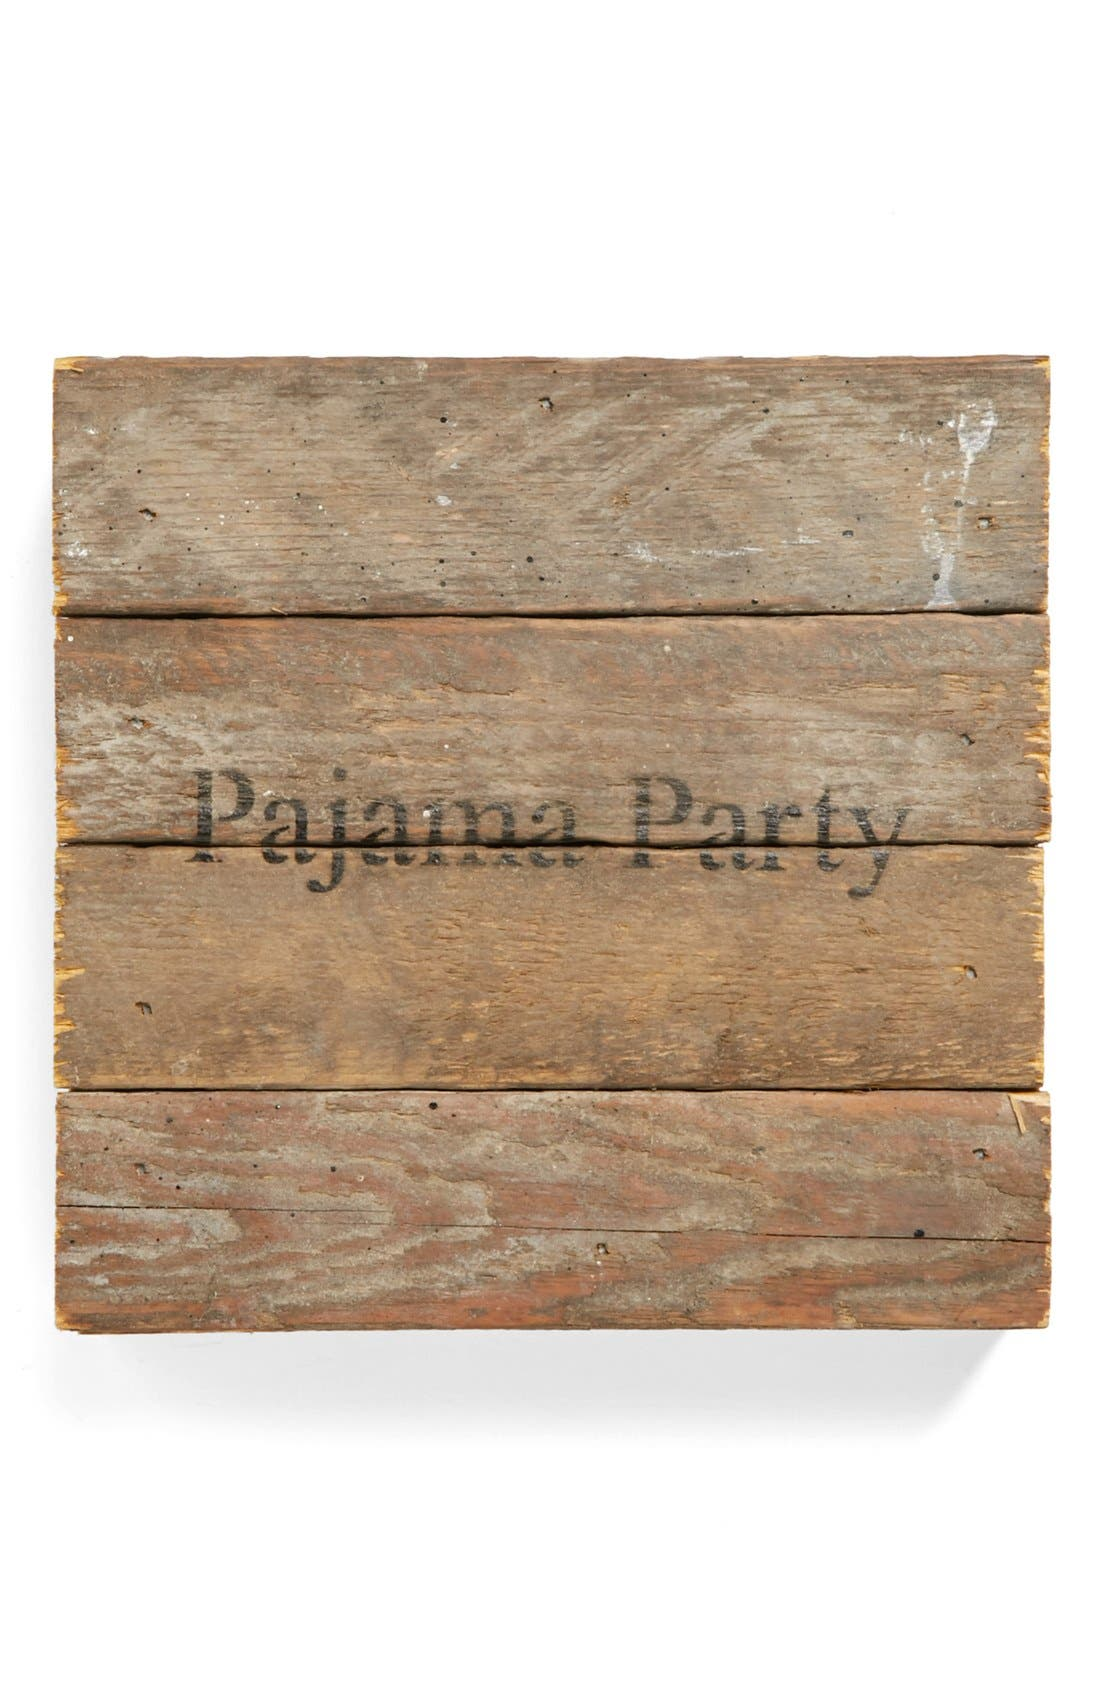 Alternate Image 1 Selected - Second Nature By Hand 'Pajama Party' Repurposed Wood Wall Art